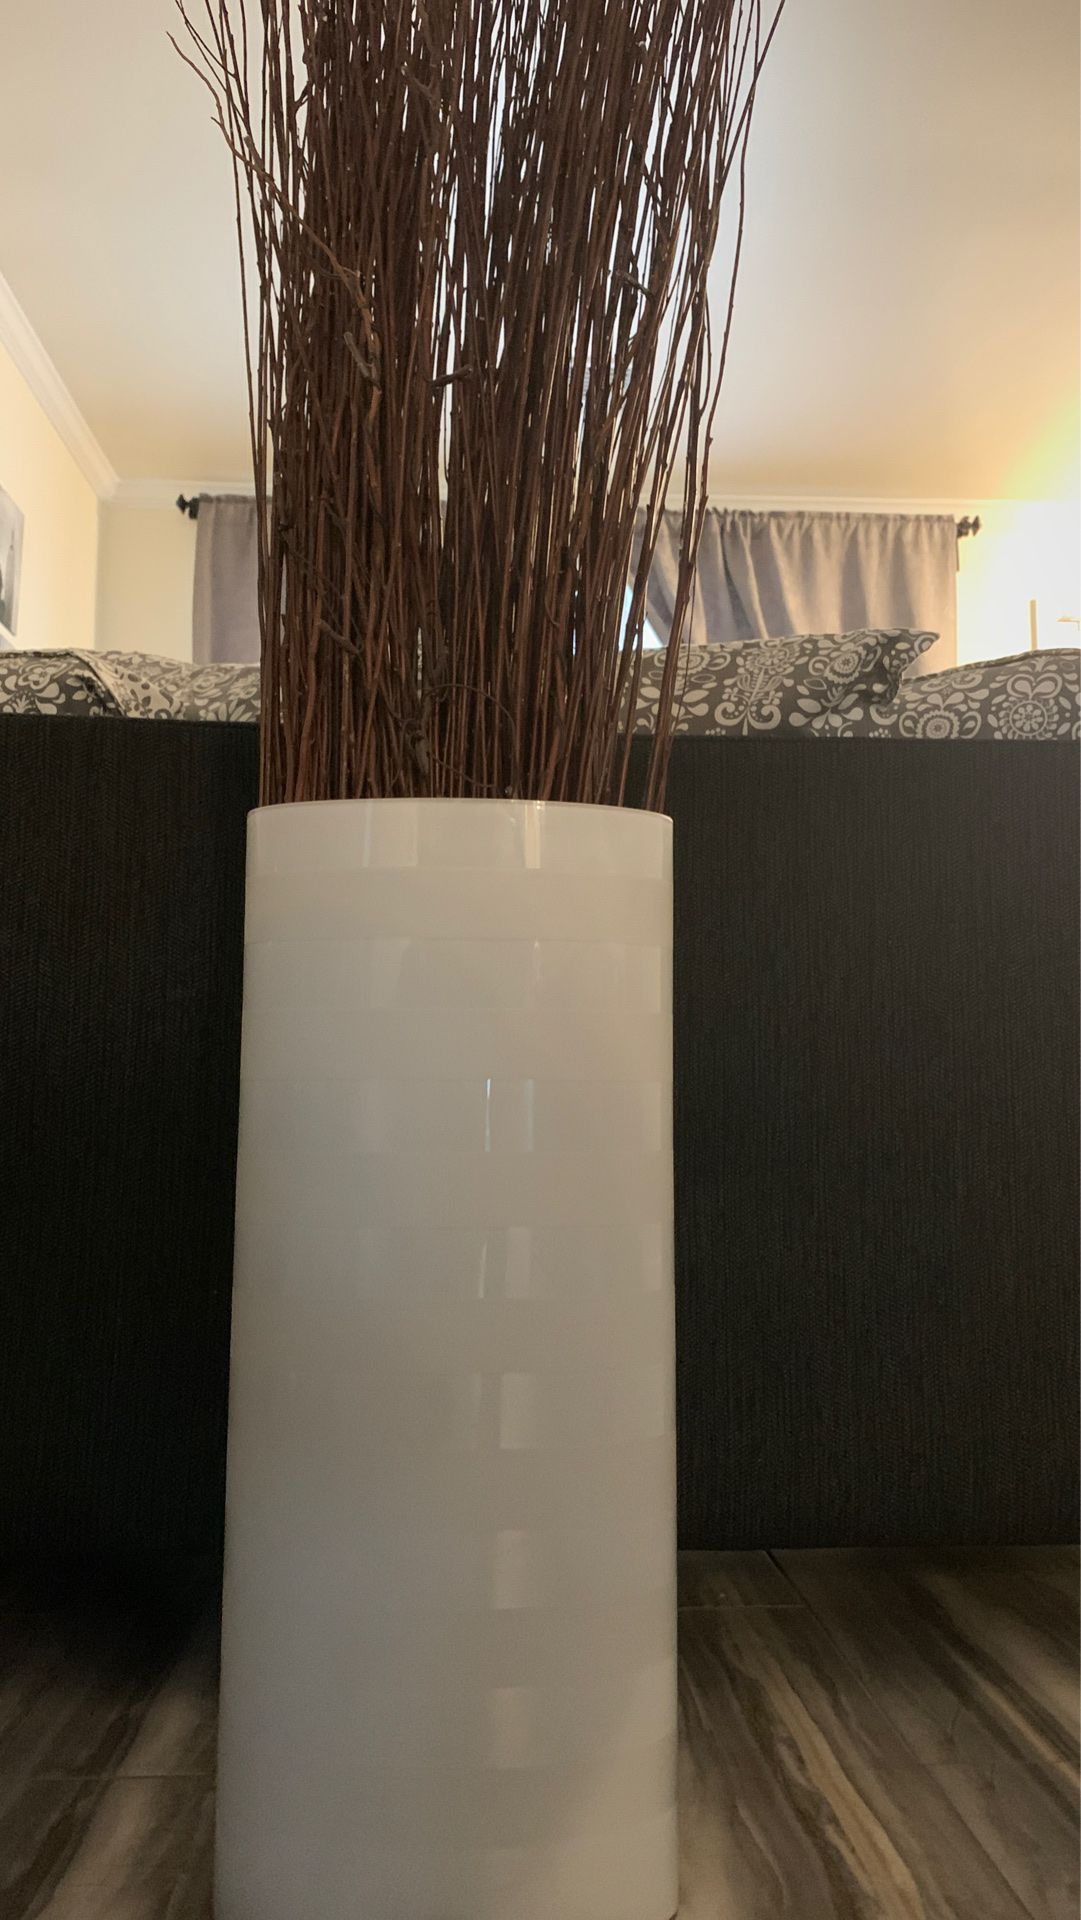 White glass vase with branches